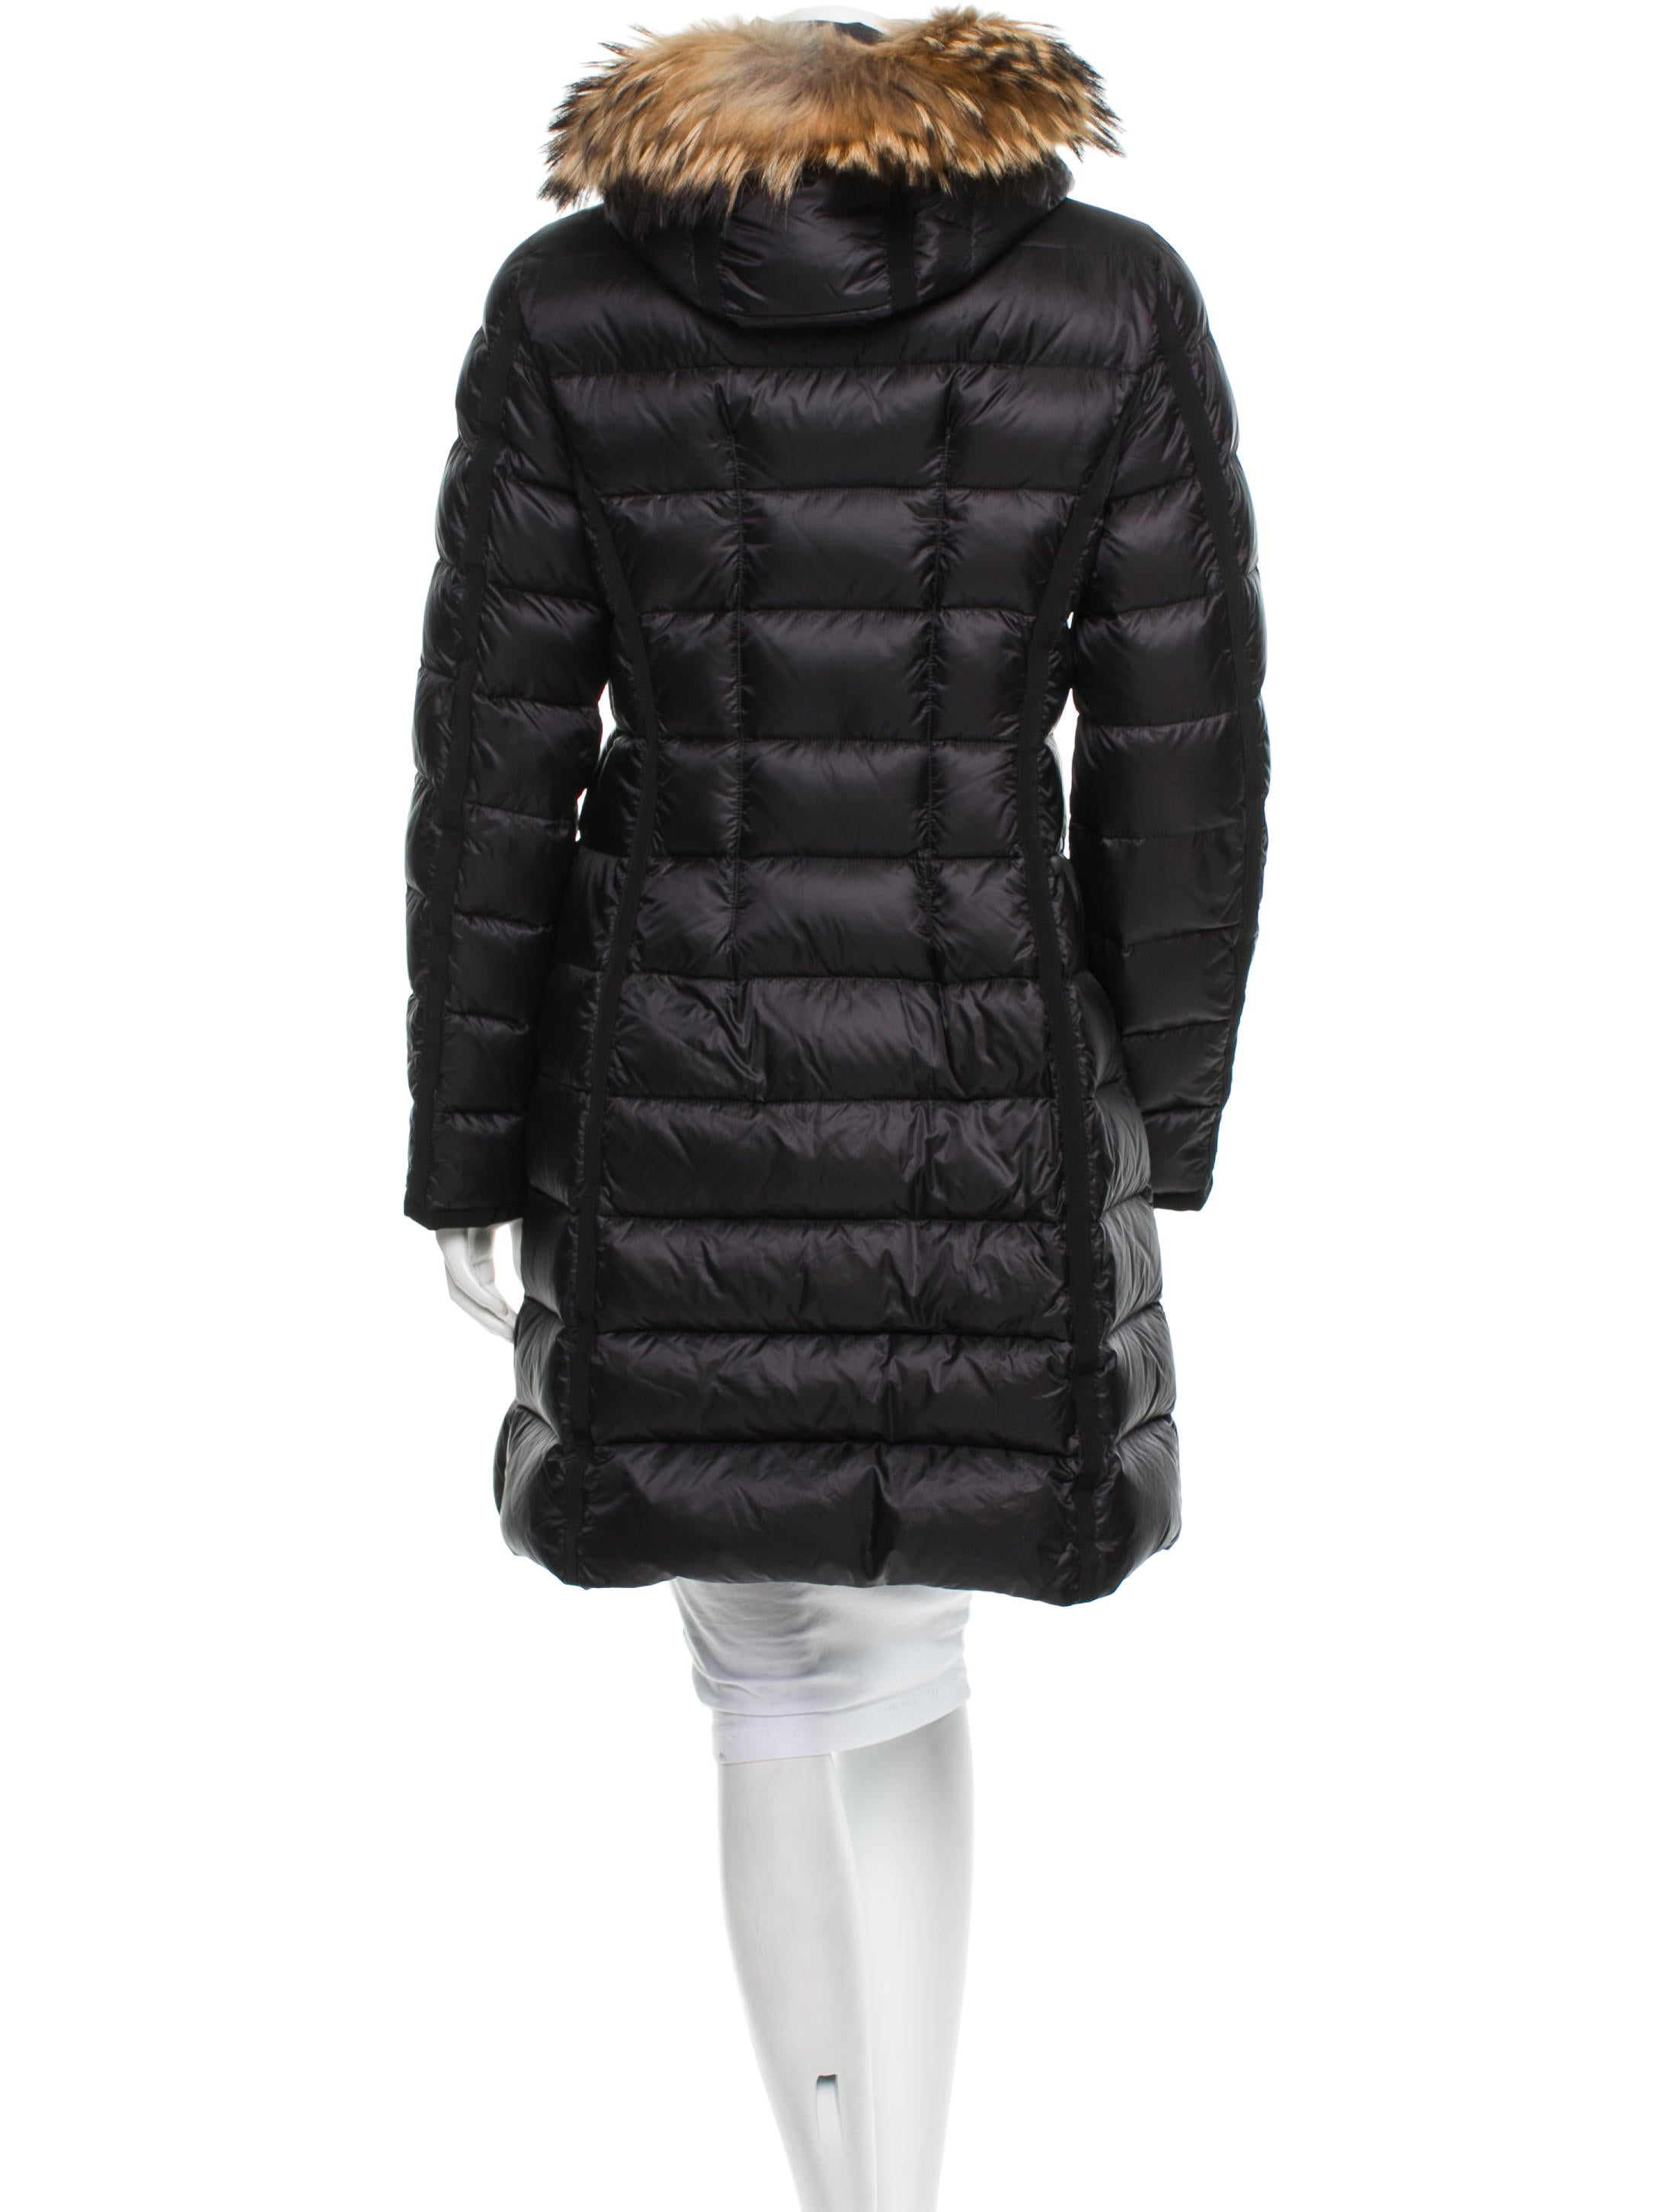 Moncler Hermifur Coat Clothing MOC21126 The RealReal : MOC211263enlarged from www.therealreal.com size 2200 x 2903 jpeg 233kB